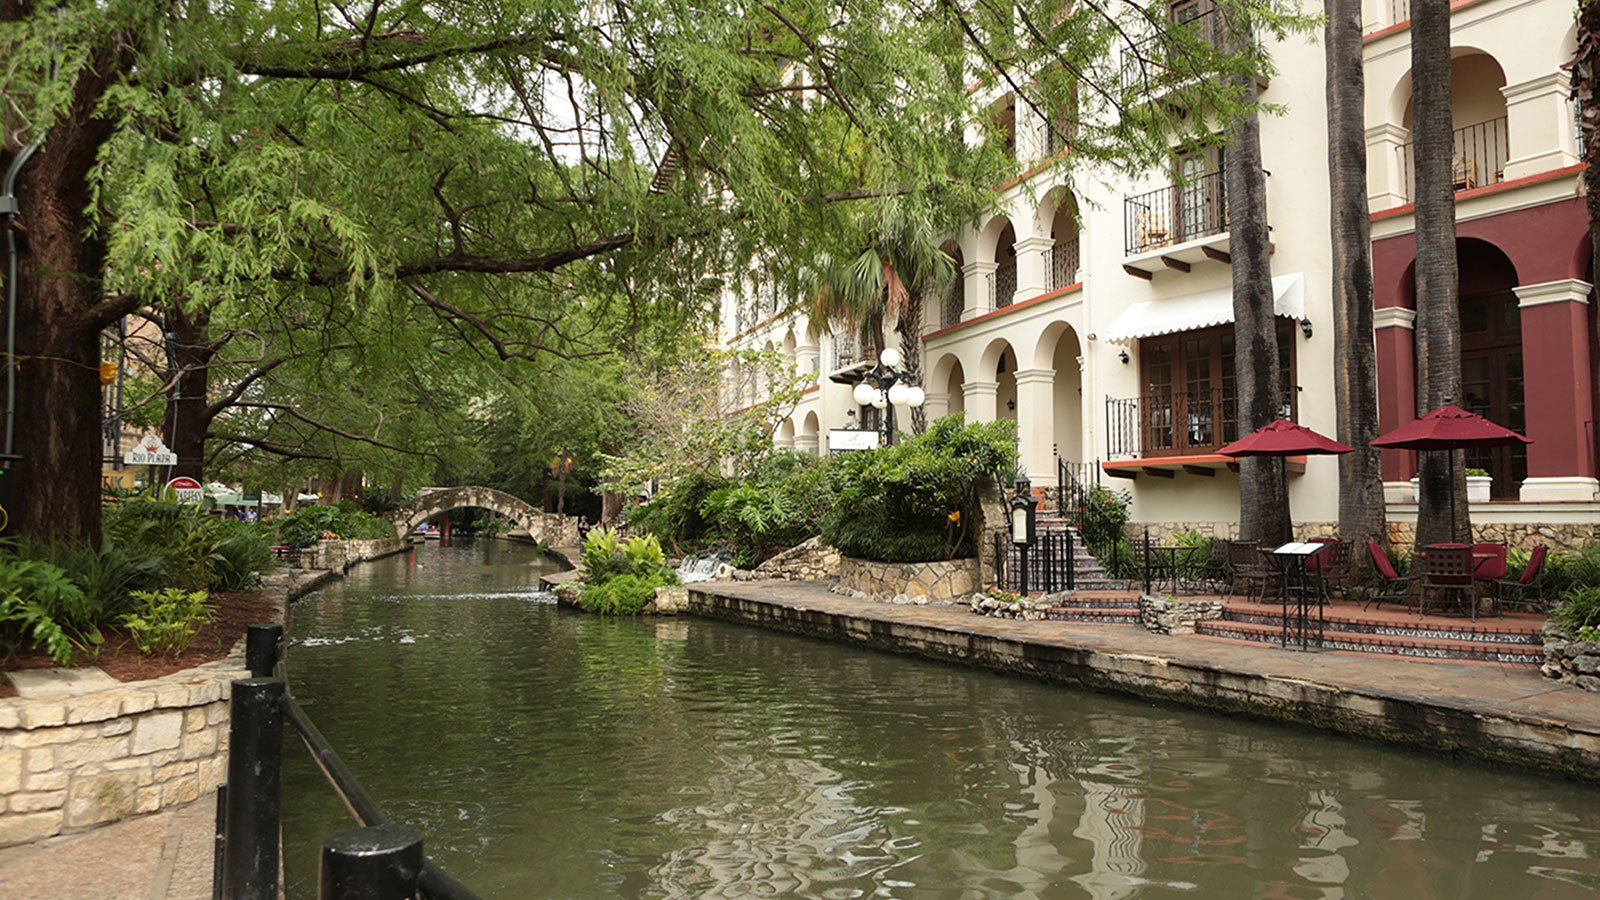 San Antonio River Walk | WTTW Chicago